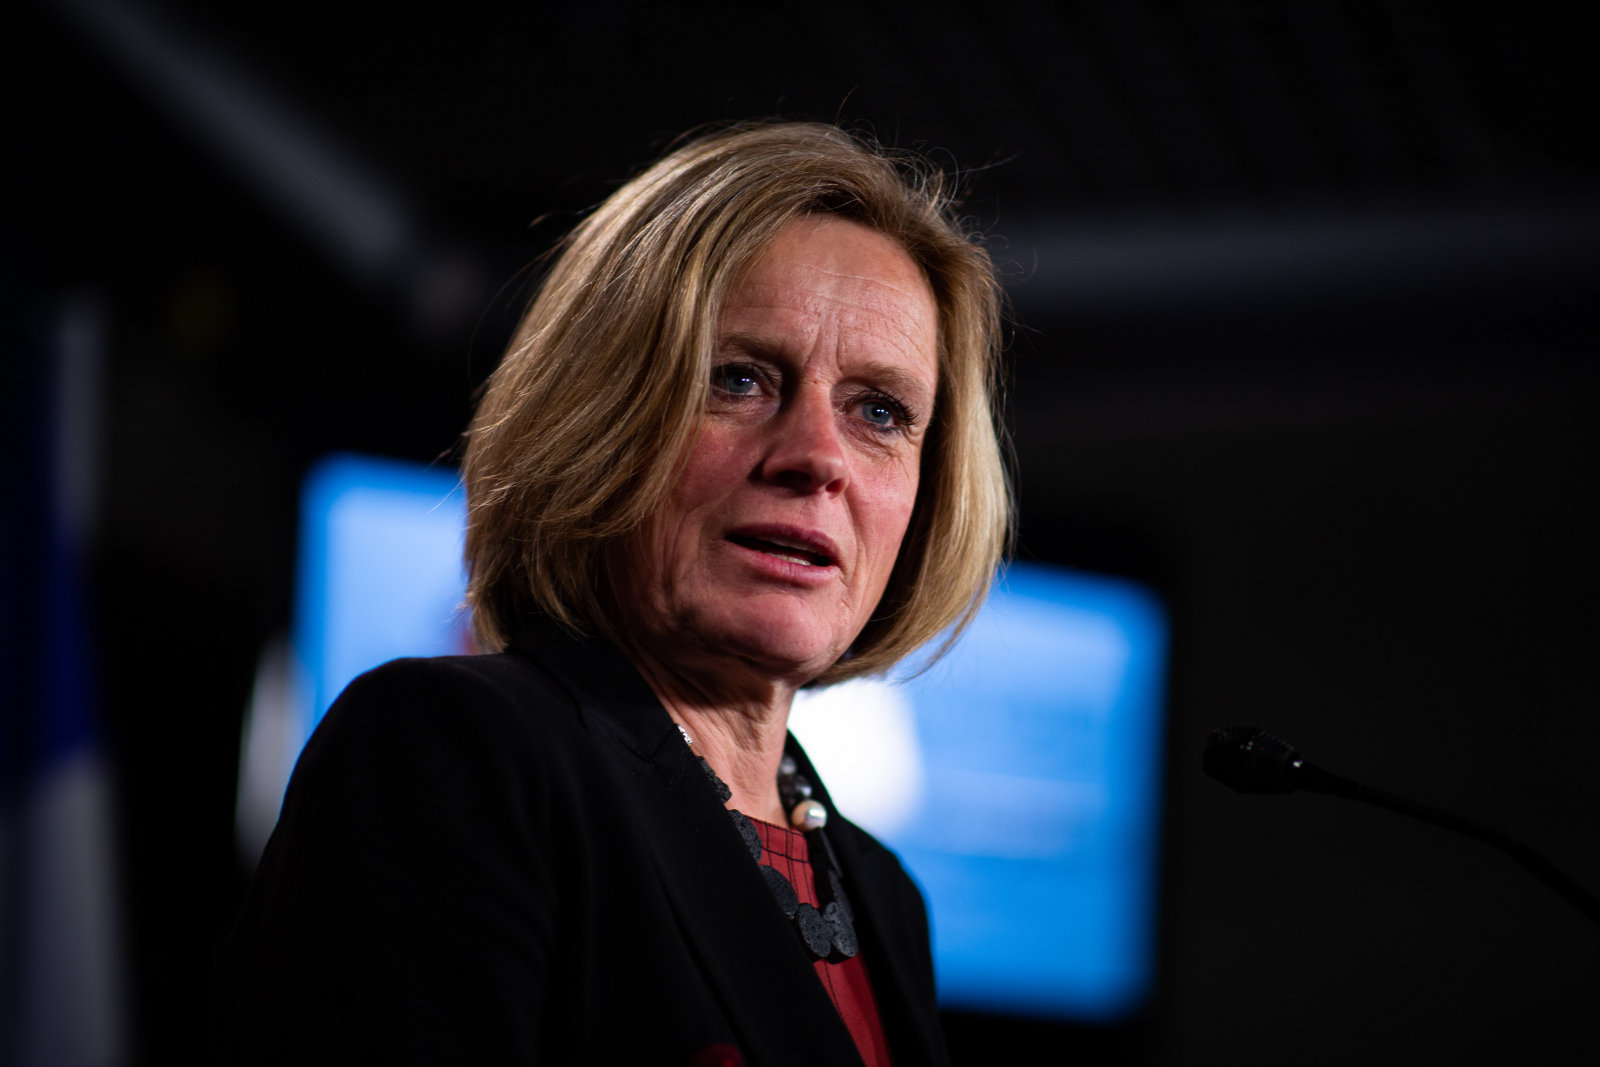 Alberta Ups Kinder Fight With Ad Campaign, Oil Cutoff Law